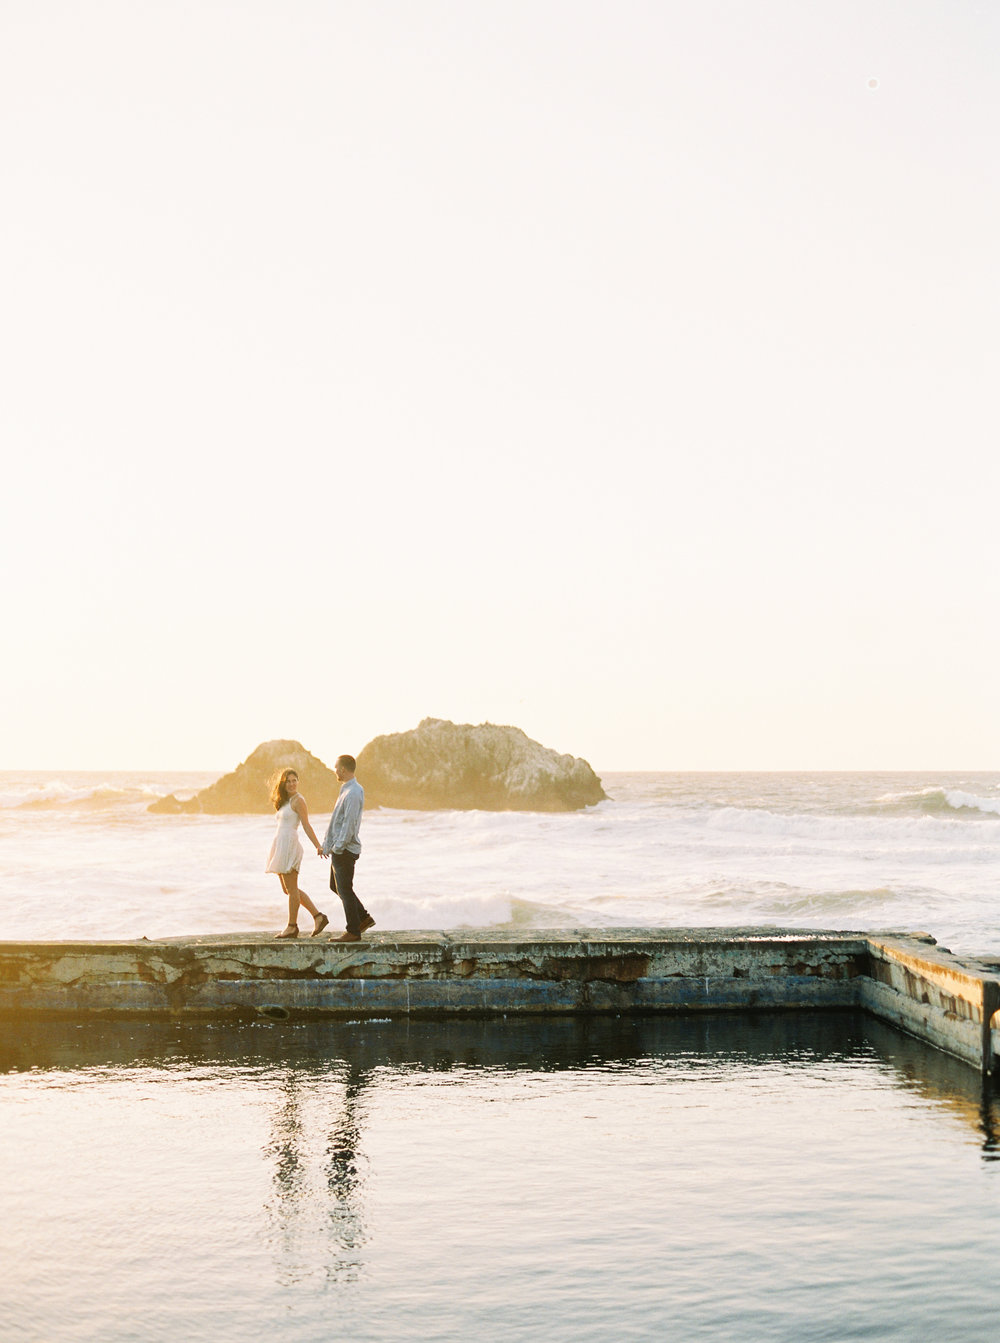 Sutro-baths-san-francisco-engagement-shoot-15.jpg